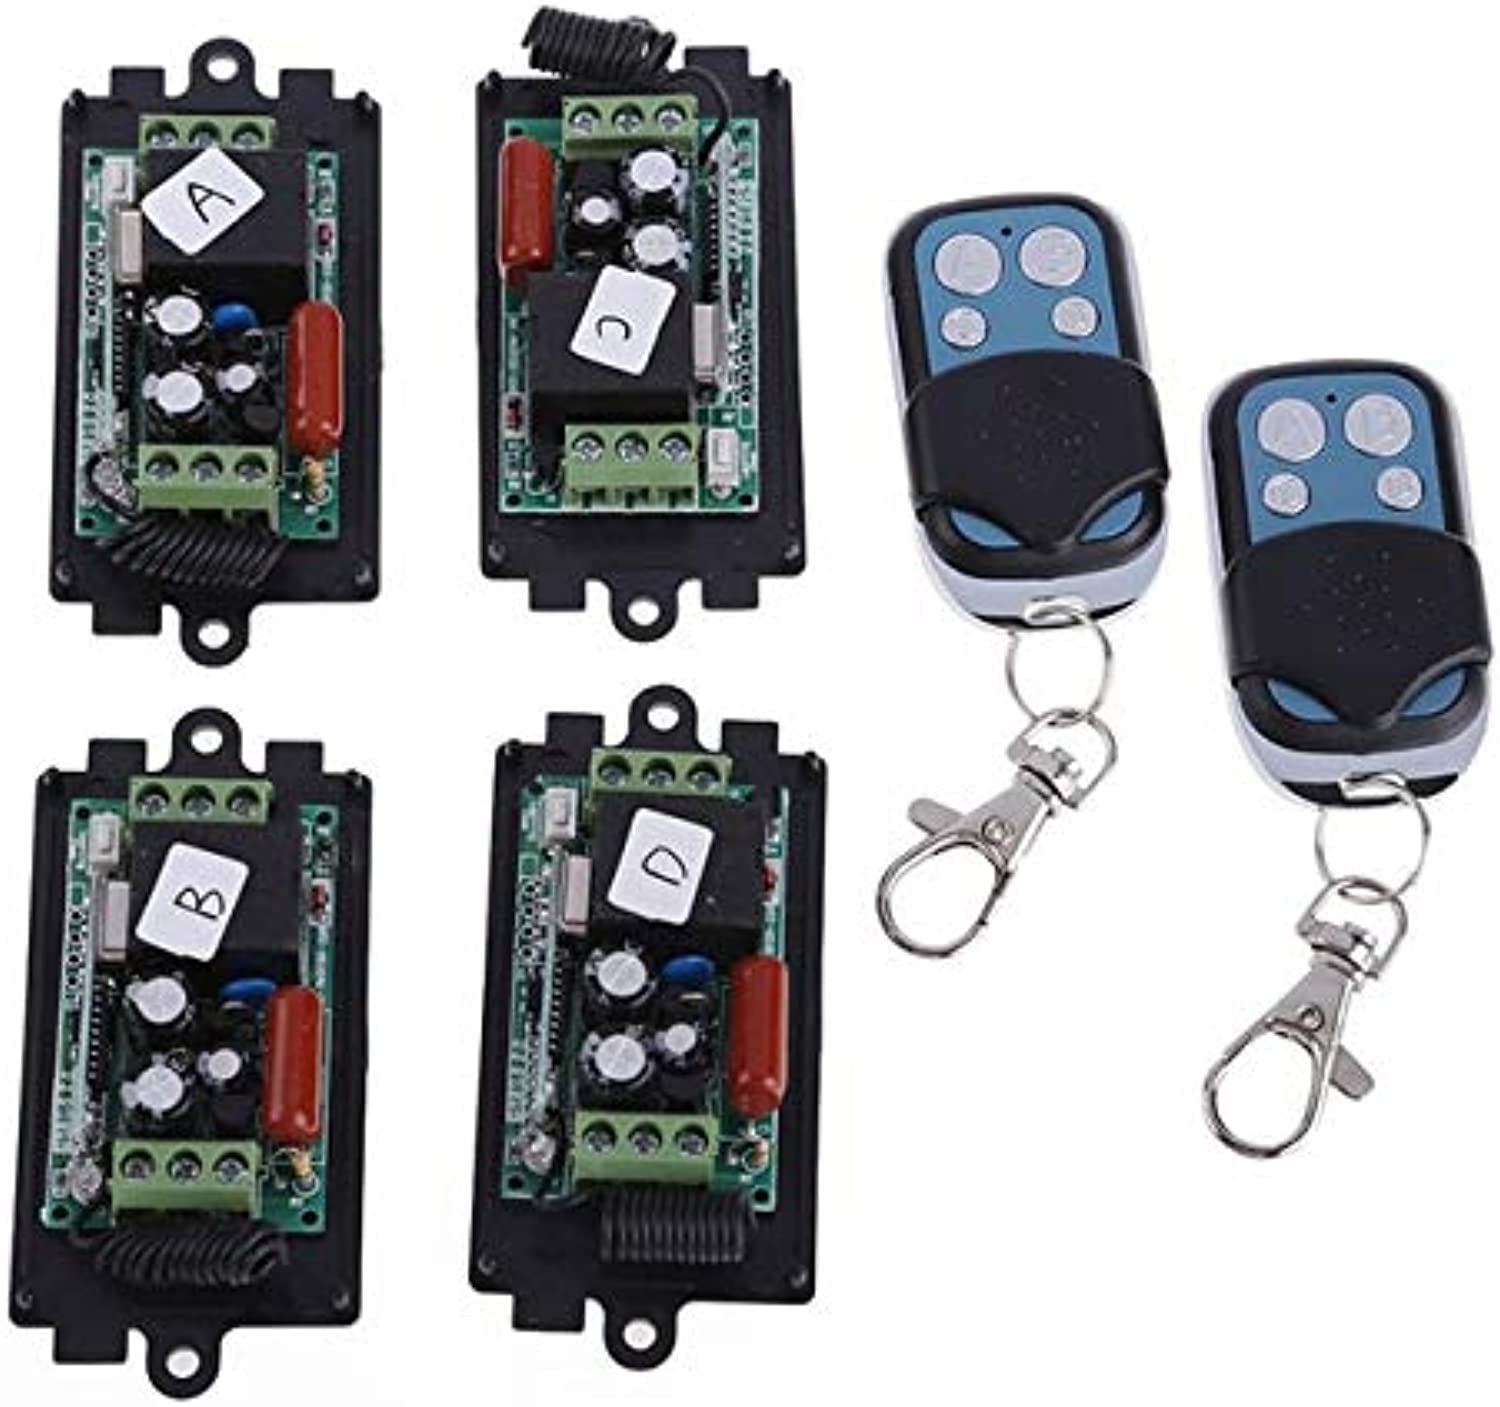 New Arrival Professional 4 x AC 220V RF Wireless Switch Relay Receiver 2 x 1CH Remote Controllers Remote Switch HR  (color  Black)